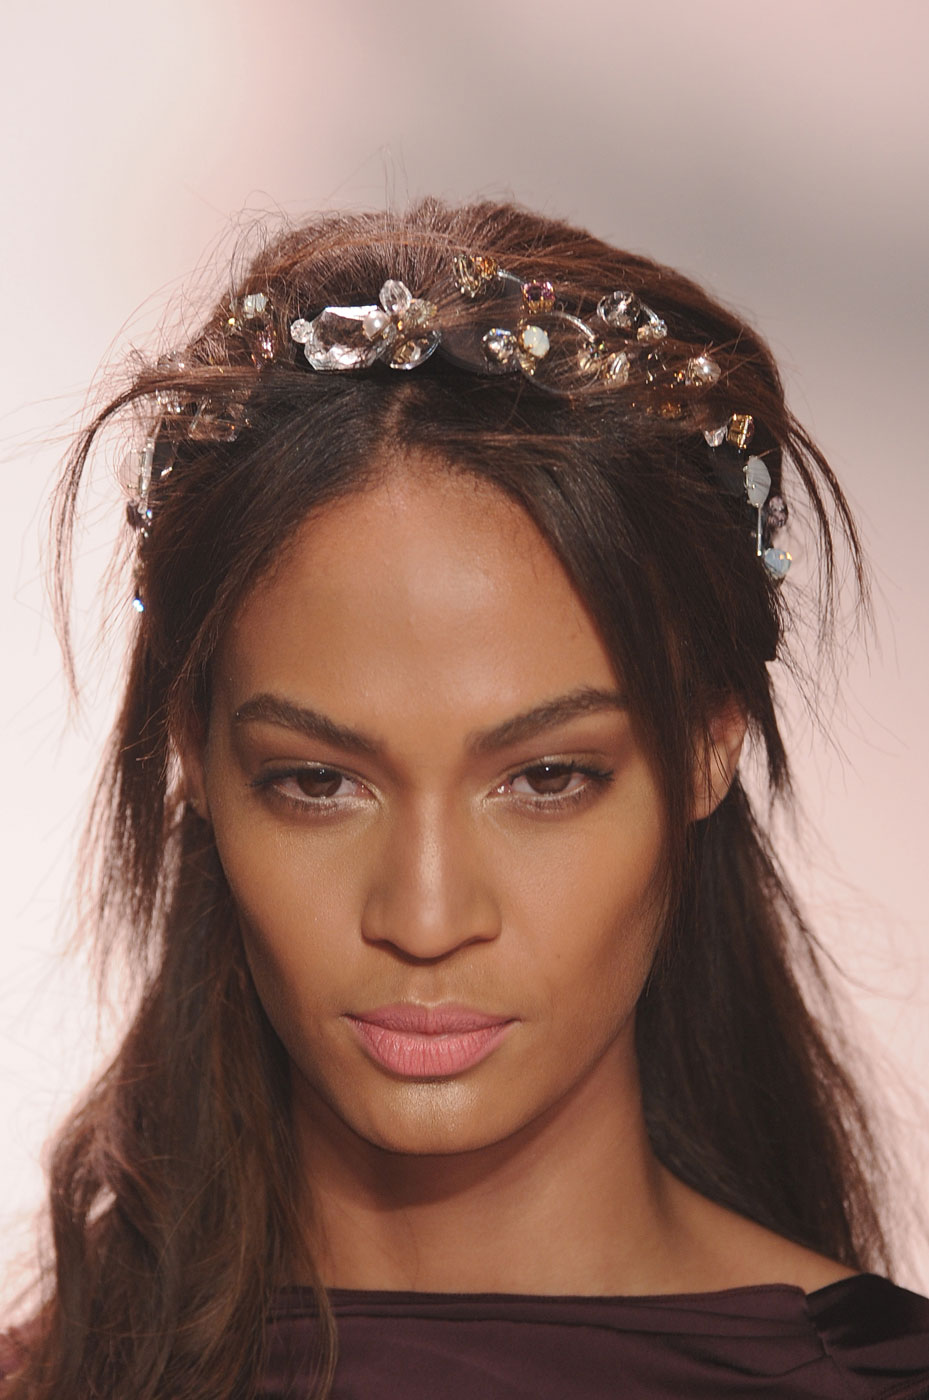 ninaricci headpieces Headpieces Trend Alert For 2012   2013 Autumn/Winter! Would You Wear Them?